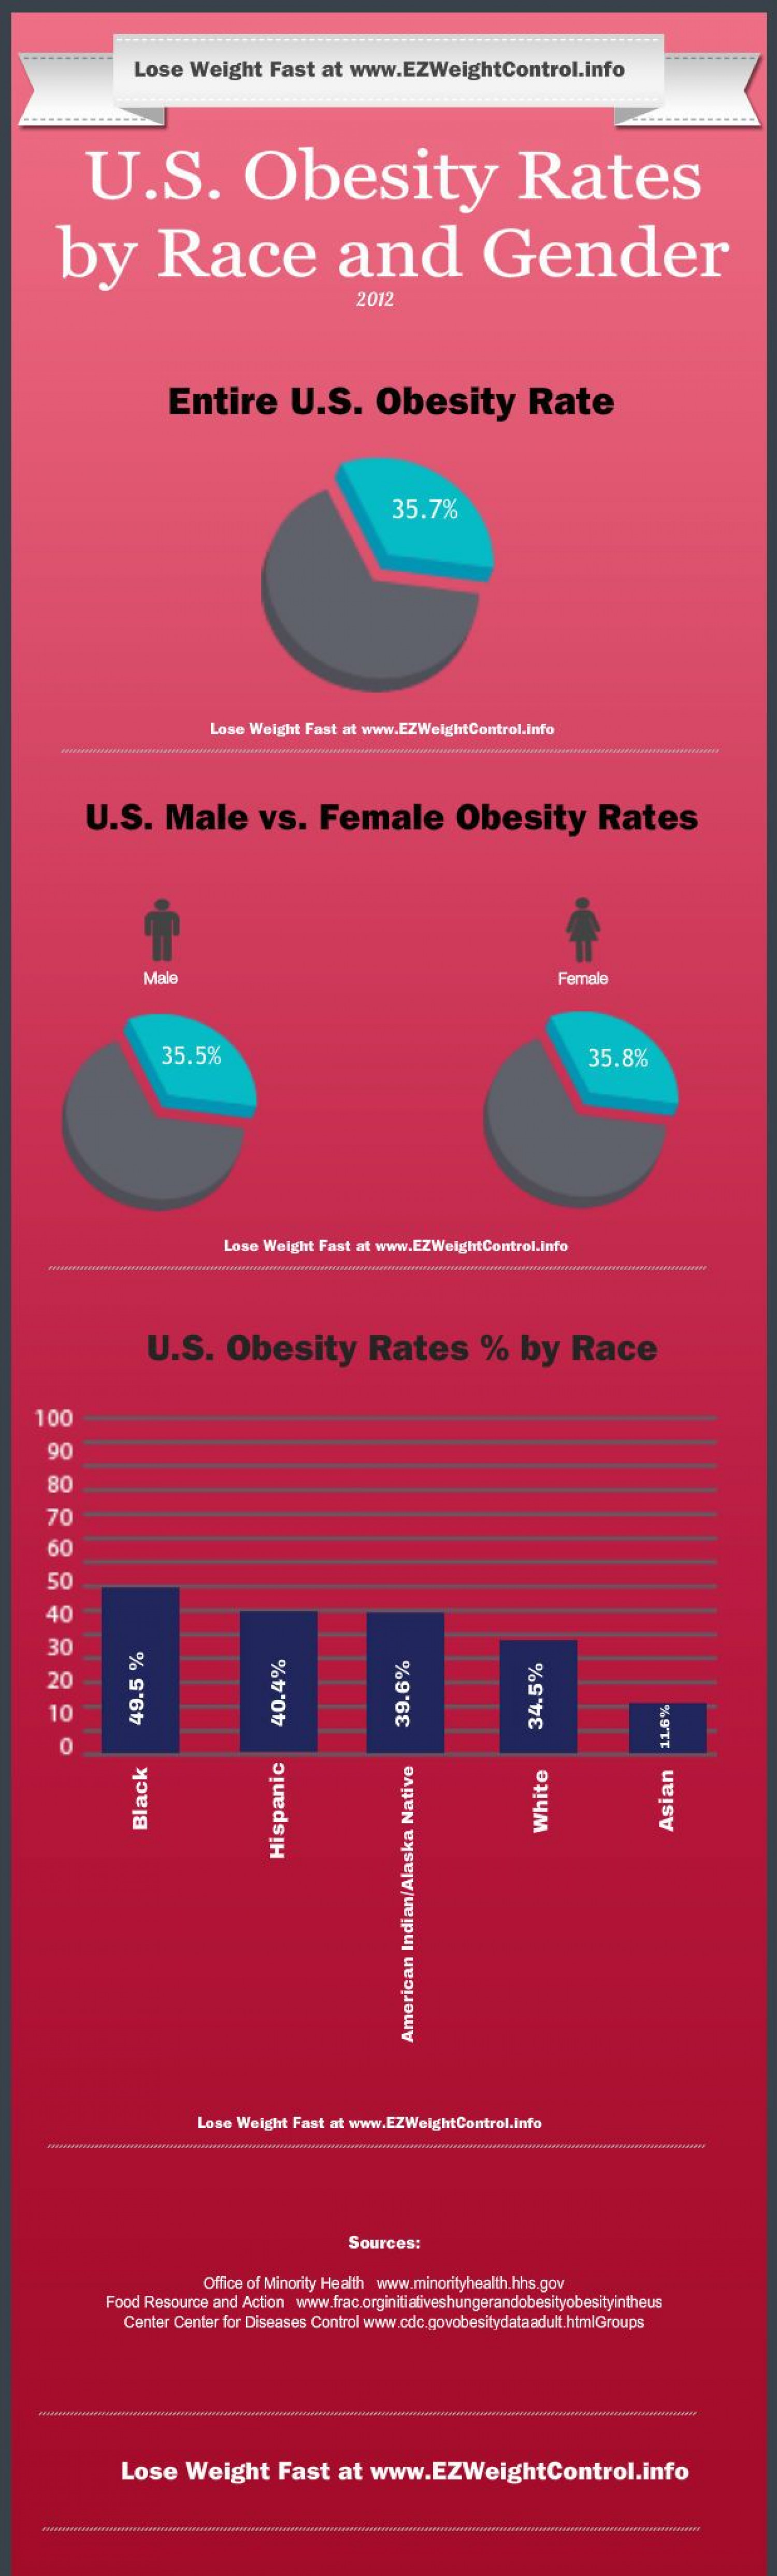 U.S. Obesity Rates by Race and Gender Infographic